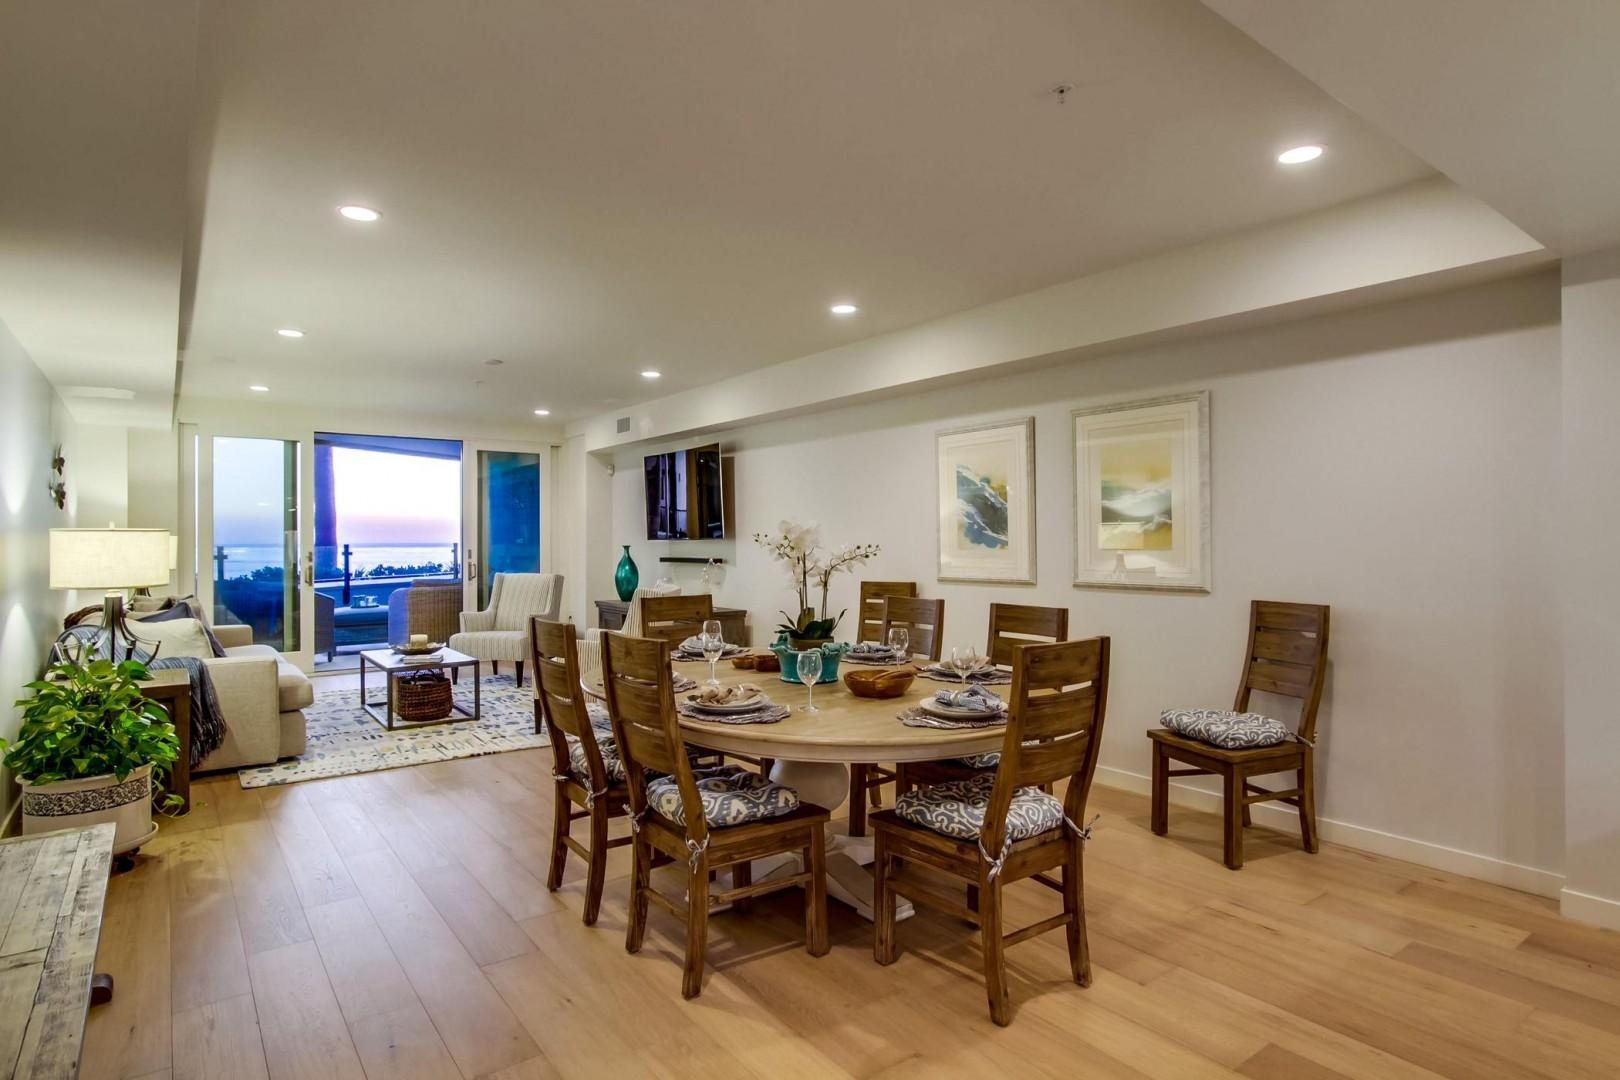 The dining table seats up to 8 and features ocean views